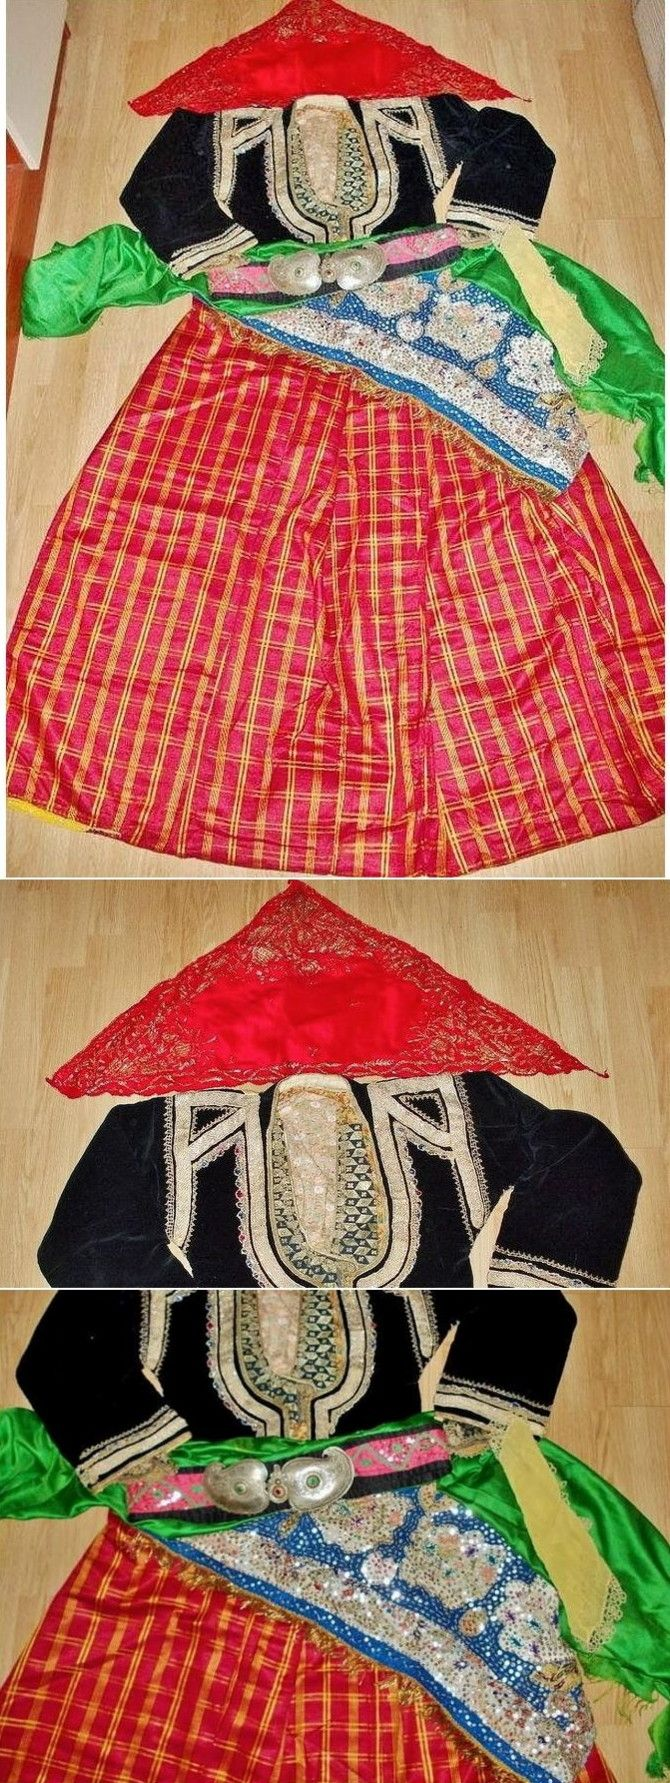 Traditional festive costume from Sille (near Konya), Turkish, ca. 1925-1950.  With red headscarf, shirt, black vest, green 'kuşak' (sash), belt with silver buckle, 'arkalık' (triangular waist shawl) and red silk baggy trousers.  Until 1922-24 the village was inhabited by Rum people (Anatolian Greeks); after they left the village (population exchange of 1922), the new Turkish inhabitants adopted some parts of the former traditional Greek costumes. (Source: Antika Osmanlı Tekstil, Istanbul).